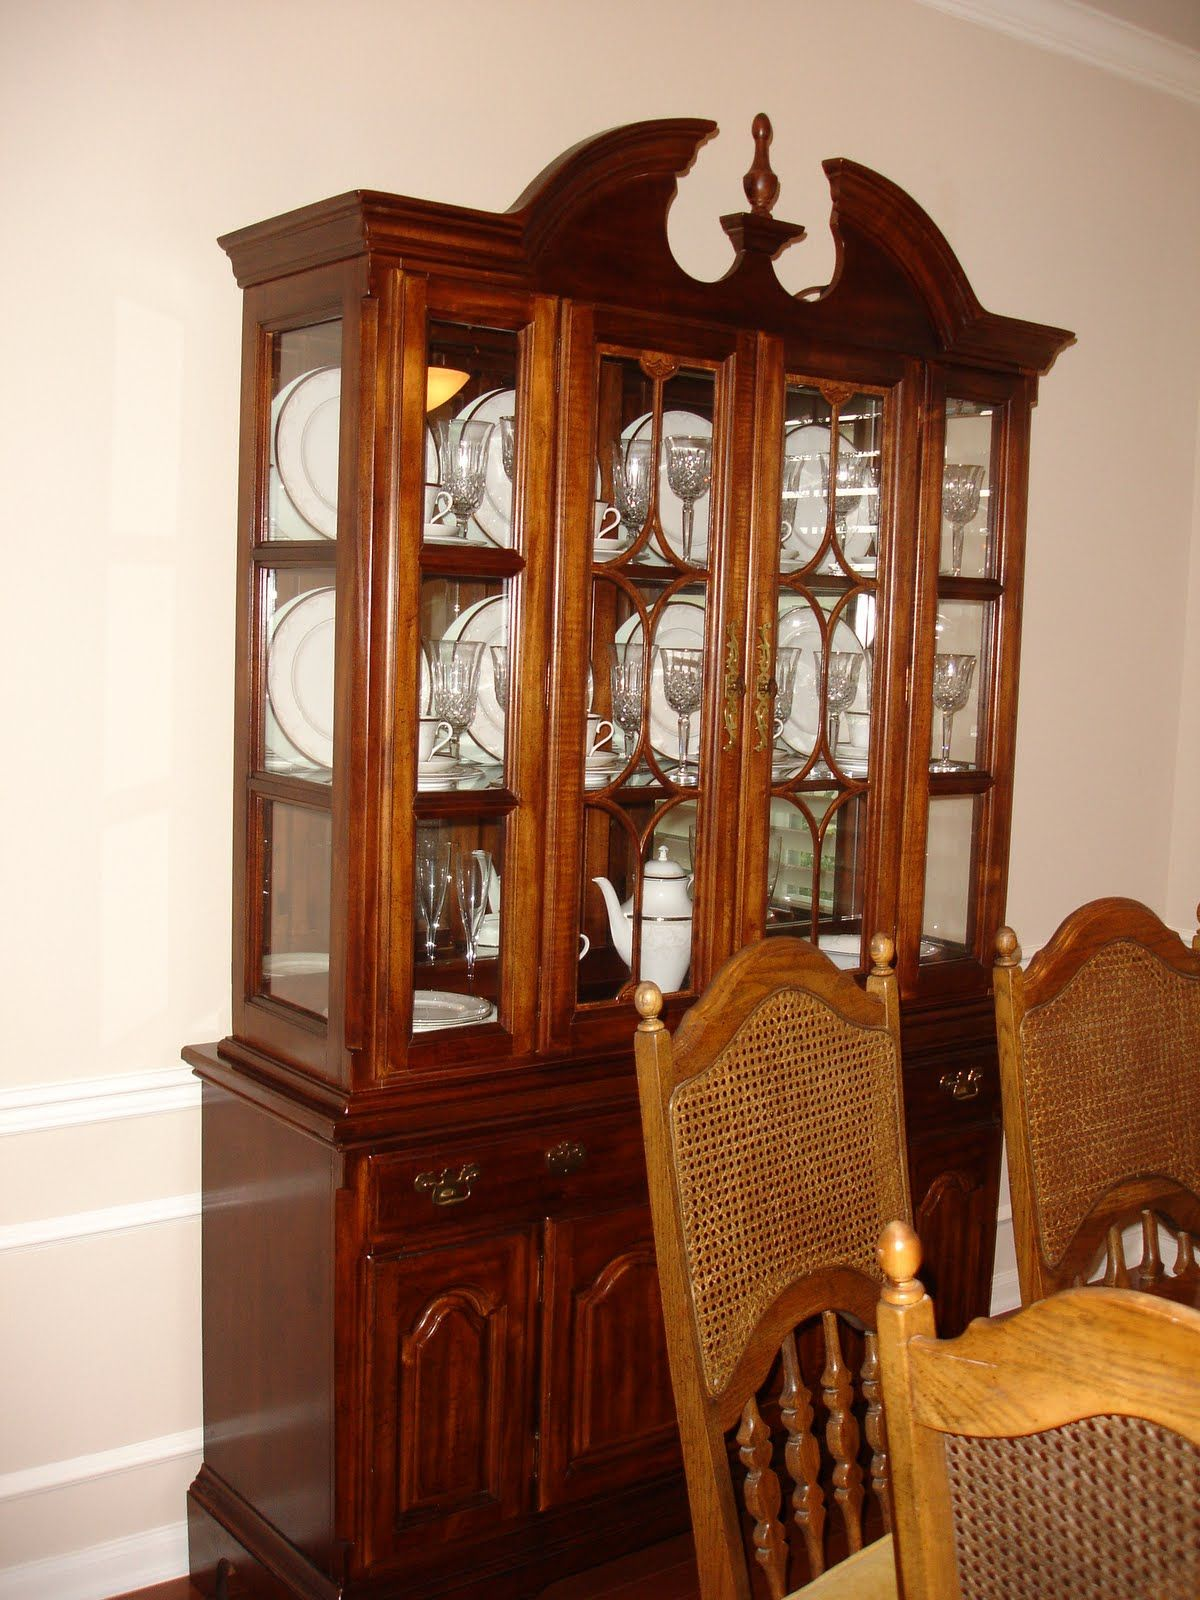 China Cabinet display (With images) | China cabinet ...